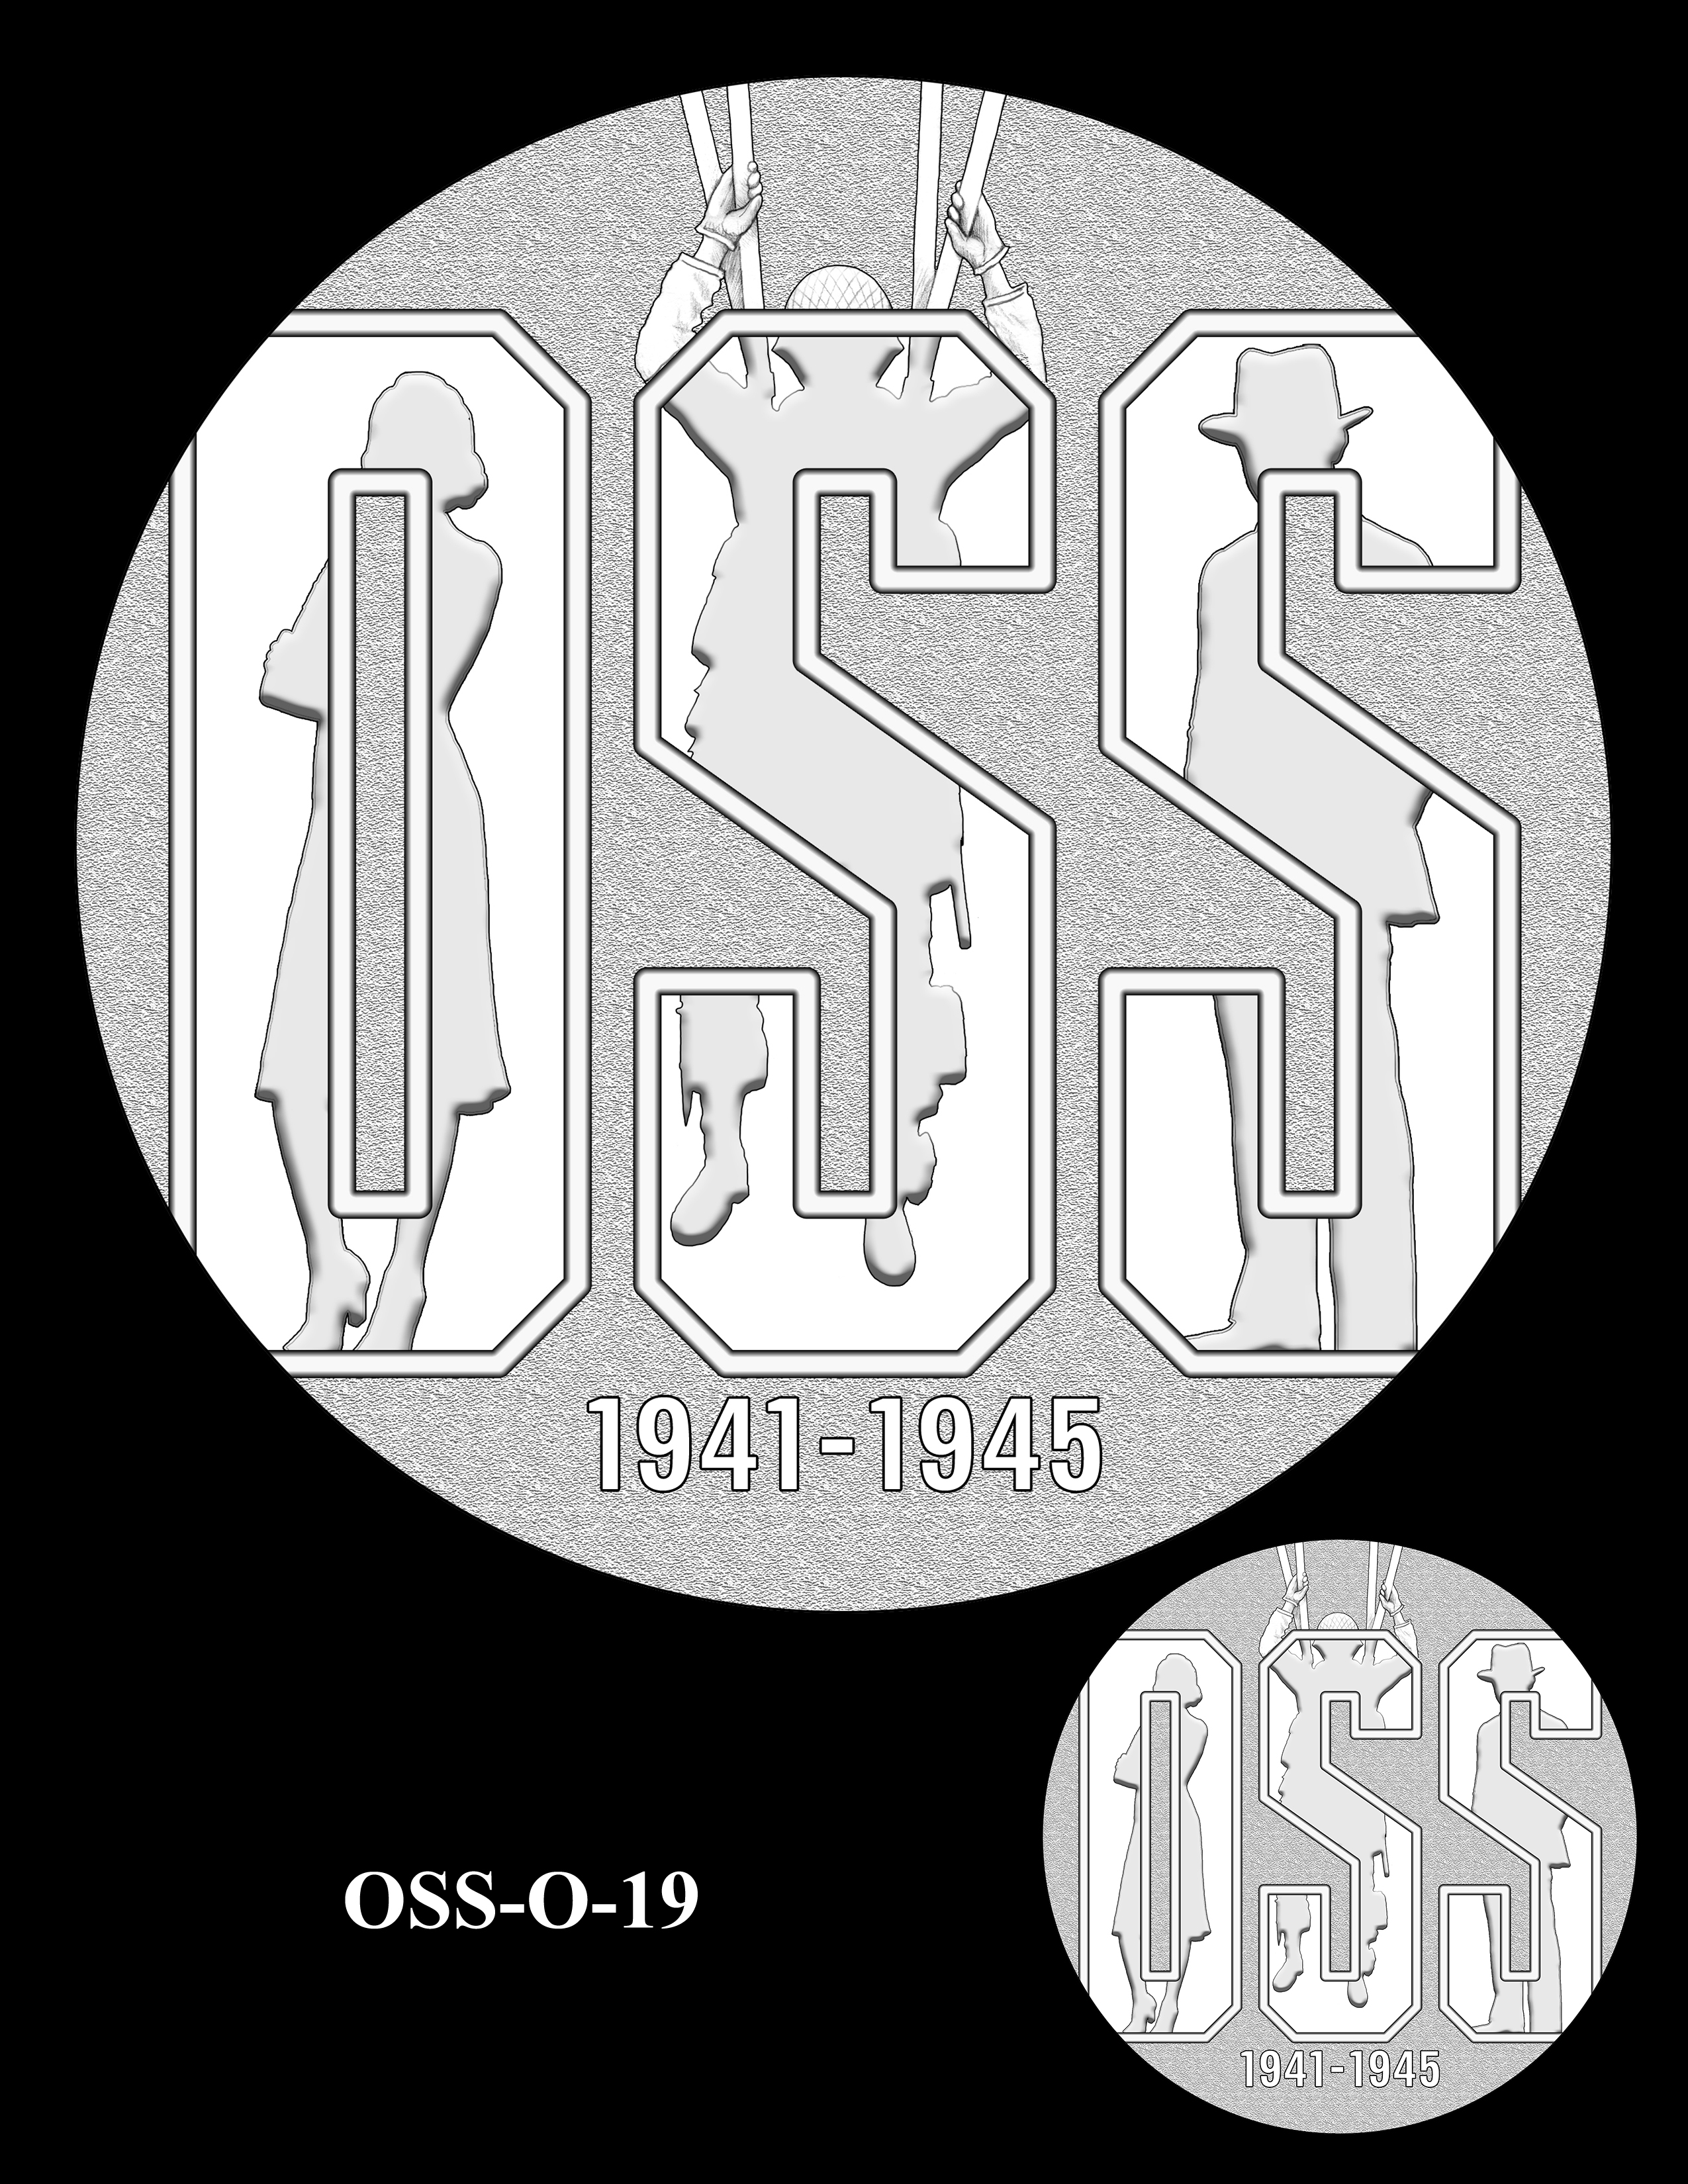 OSS-O-19 -- Office of Strategic Services Congressional Gold Medal